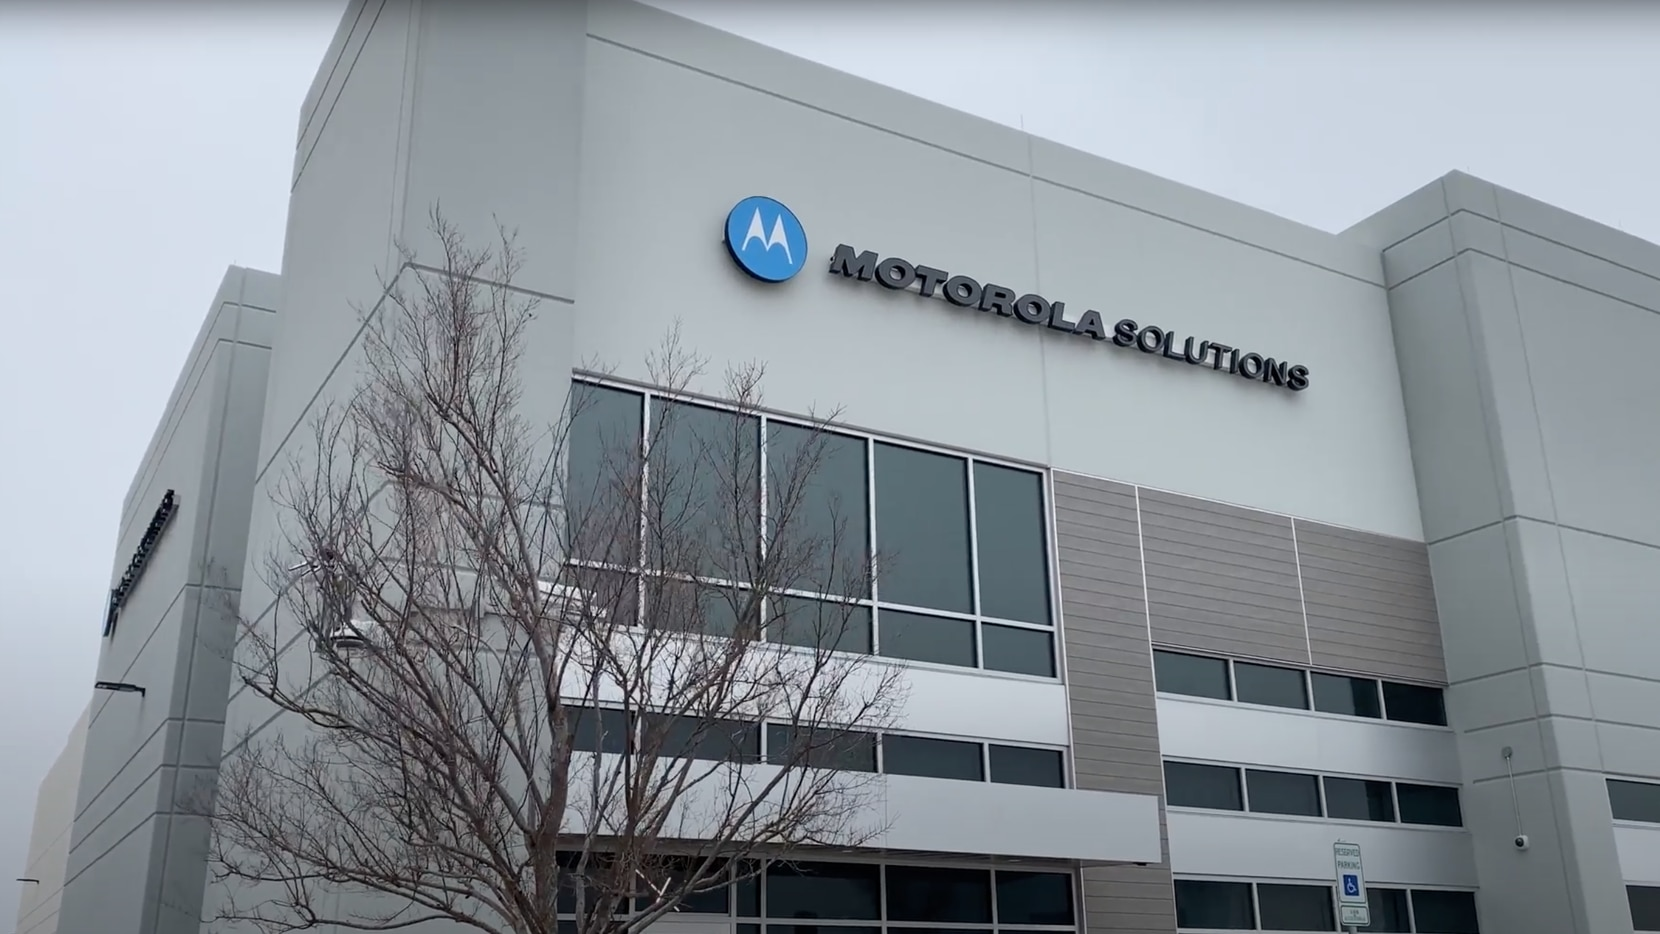 Motorola Solutions' new, centralized manufacturing facility in Richardson will house production for its video security and analytics business.